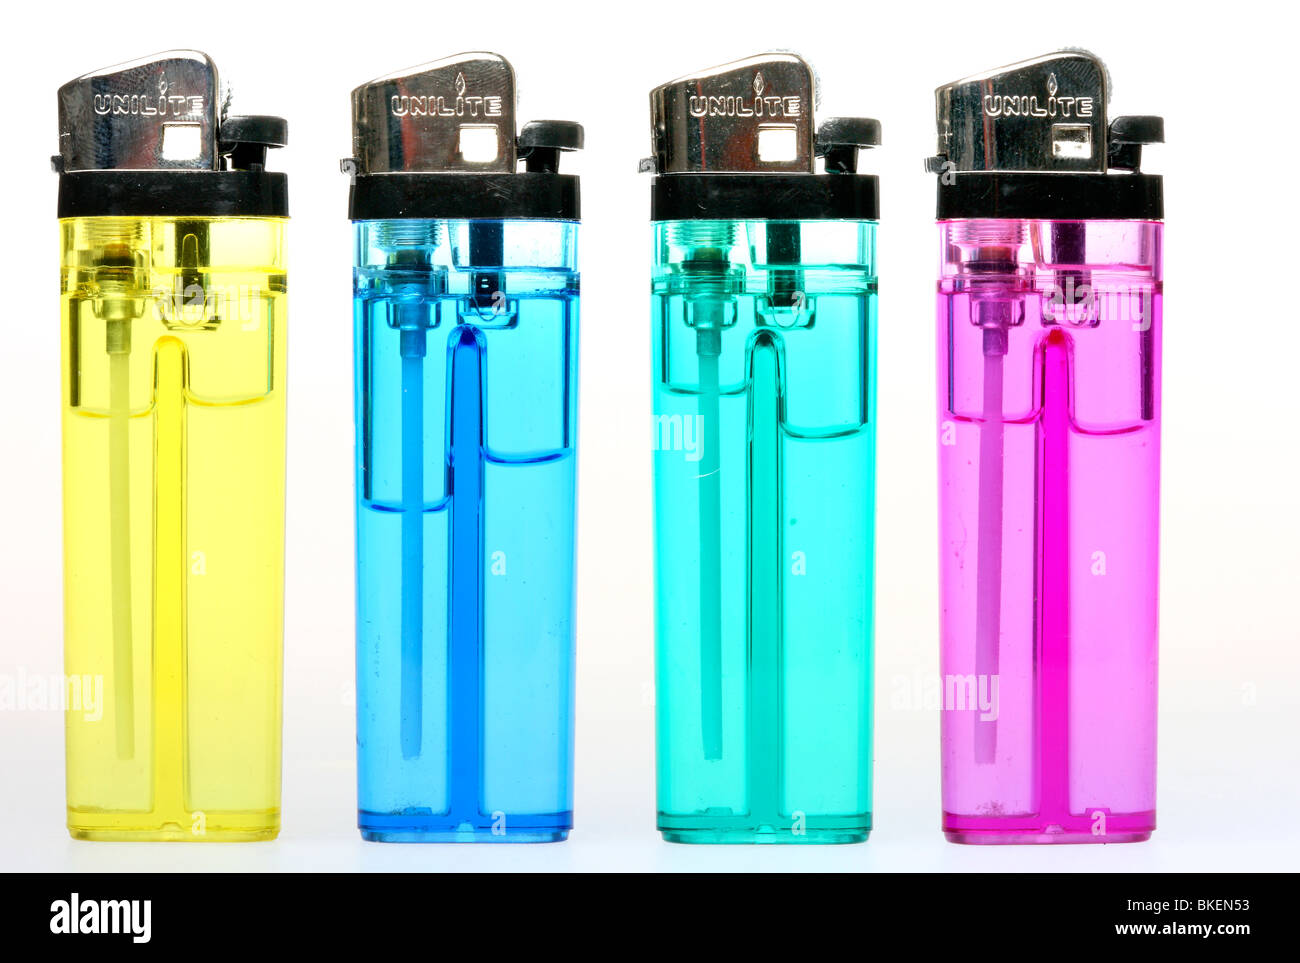 colorful lighter with liquids. Germany, Europe. - Stock Image